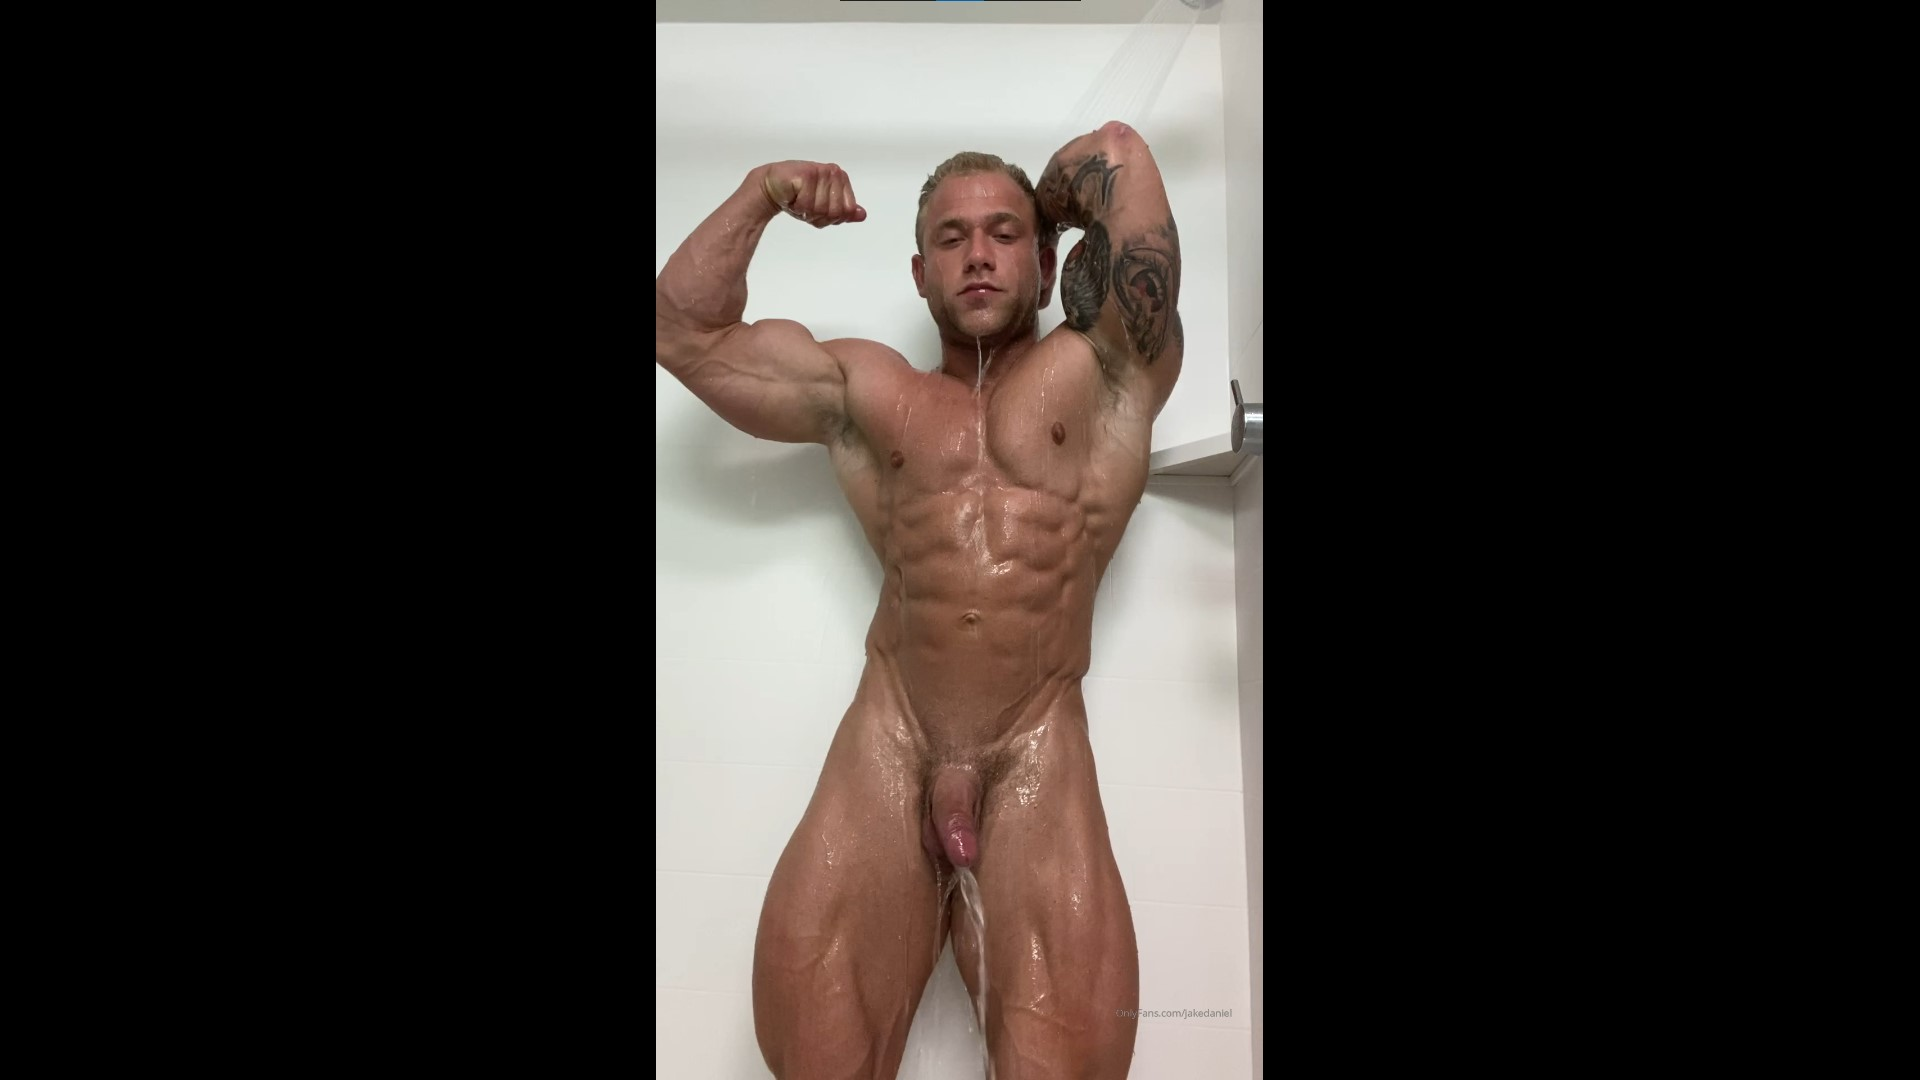 Flexing while in the shower - Jake Daniel